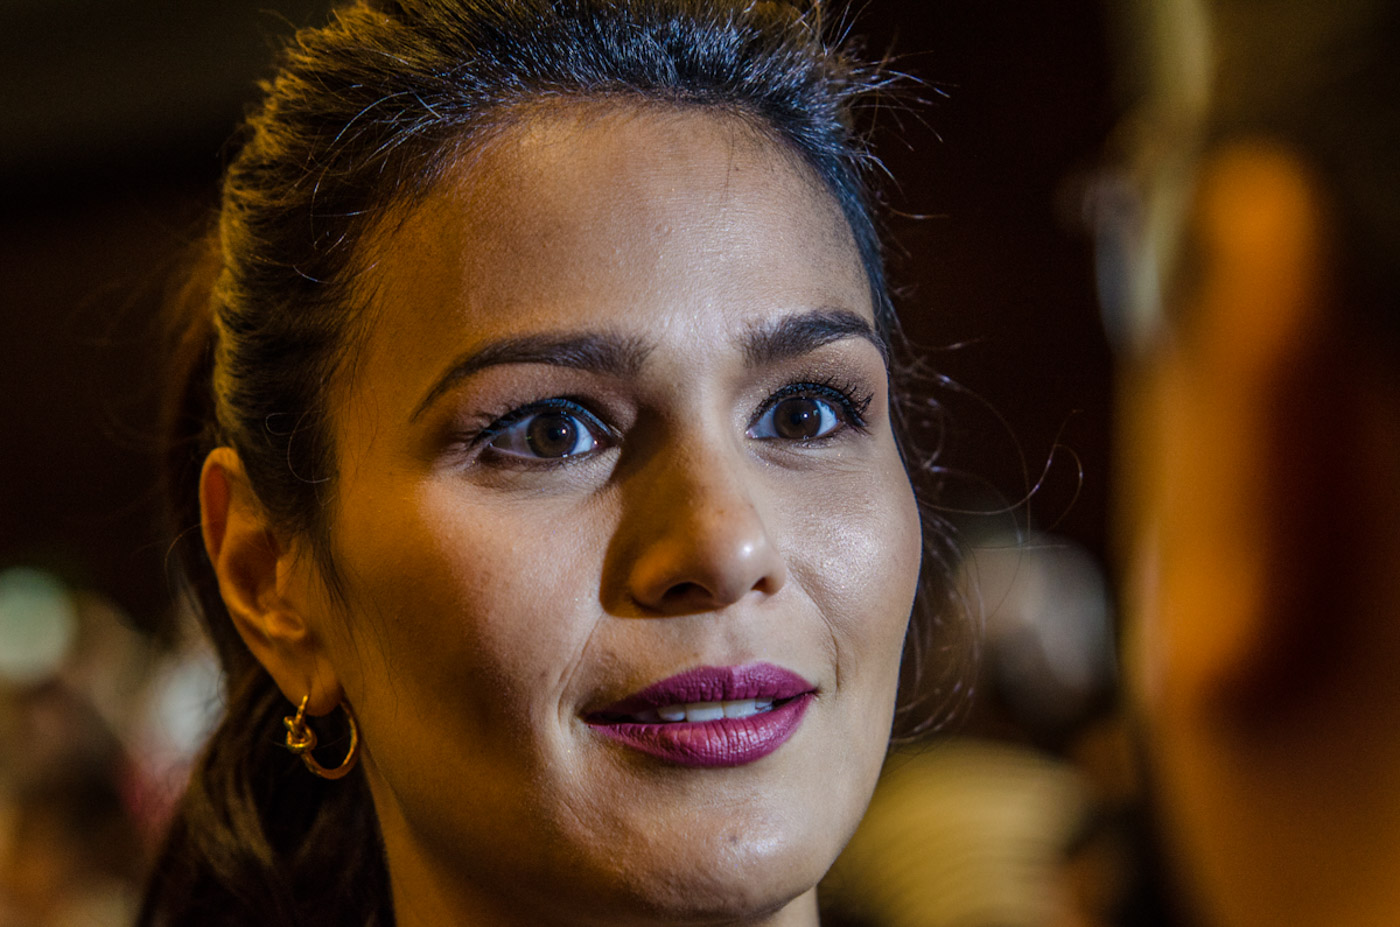 ACTRESS IZA CALZADO. Iza Calzado says she's open to roles that will challenge her, including kissing a transgender actor. All photos by Rob Reyes/Rappler